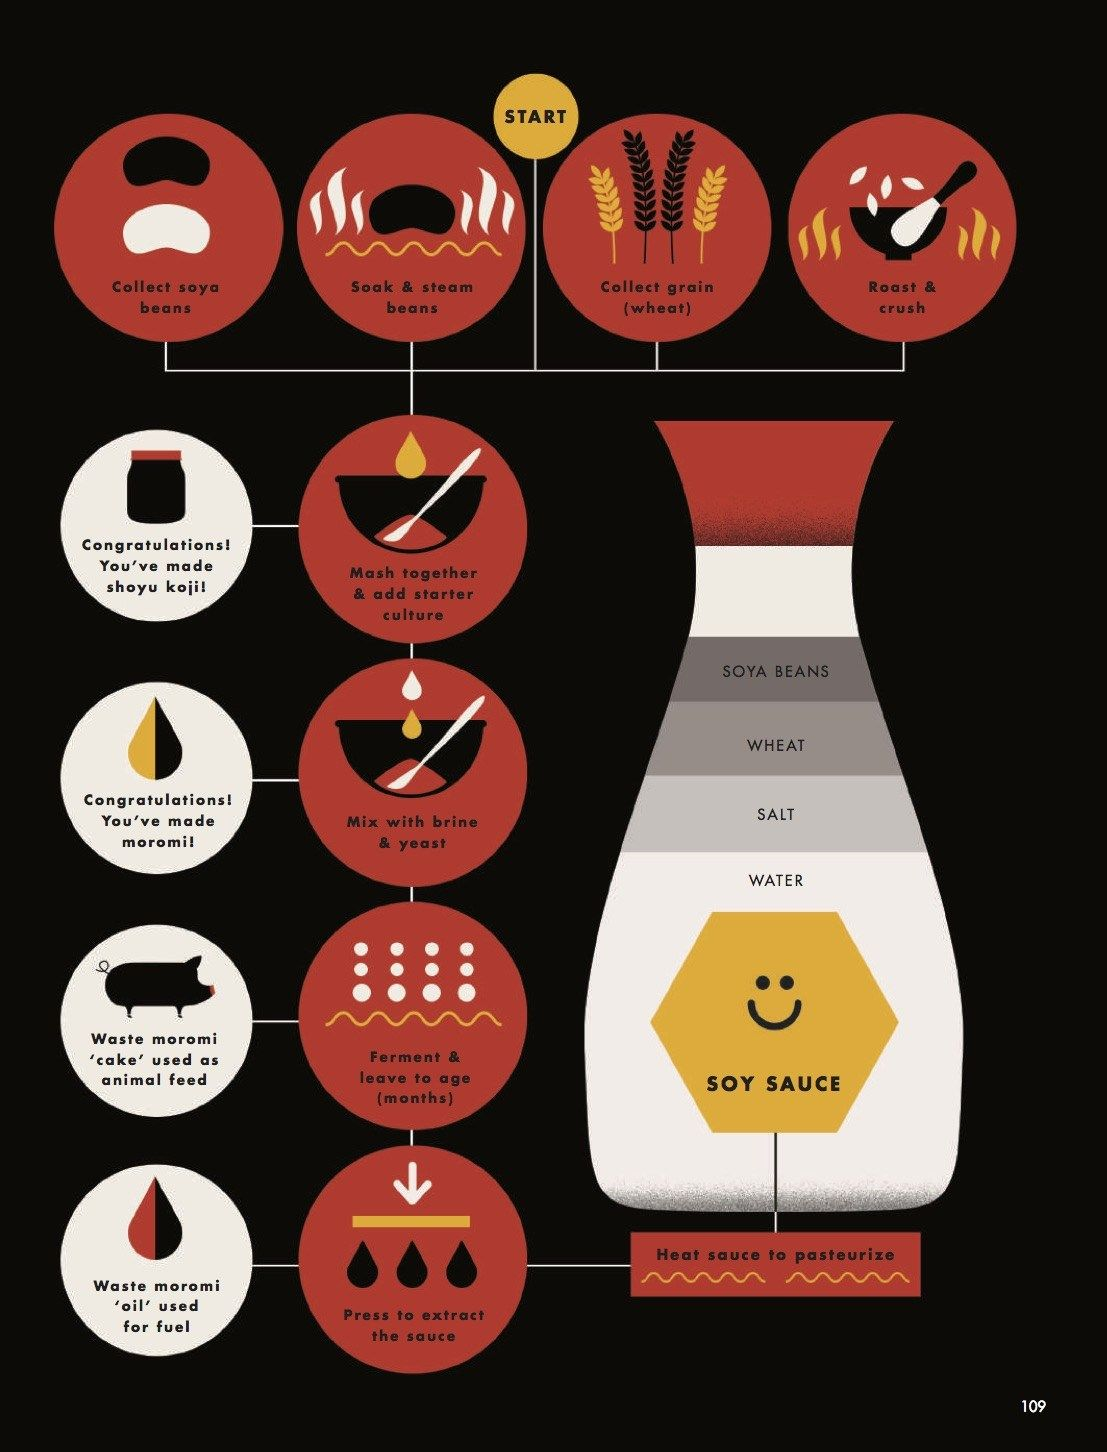 How to Make Soy Sauce